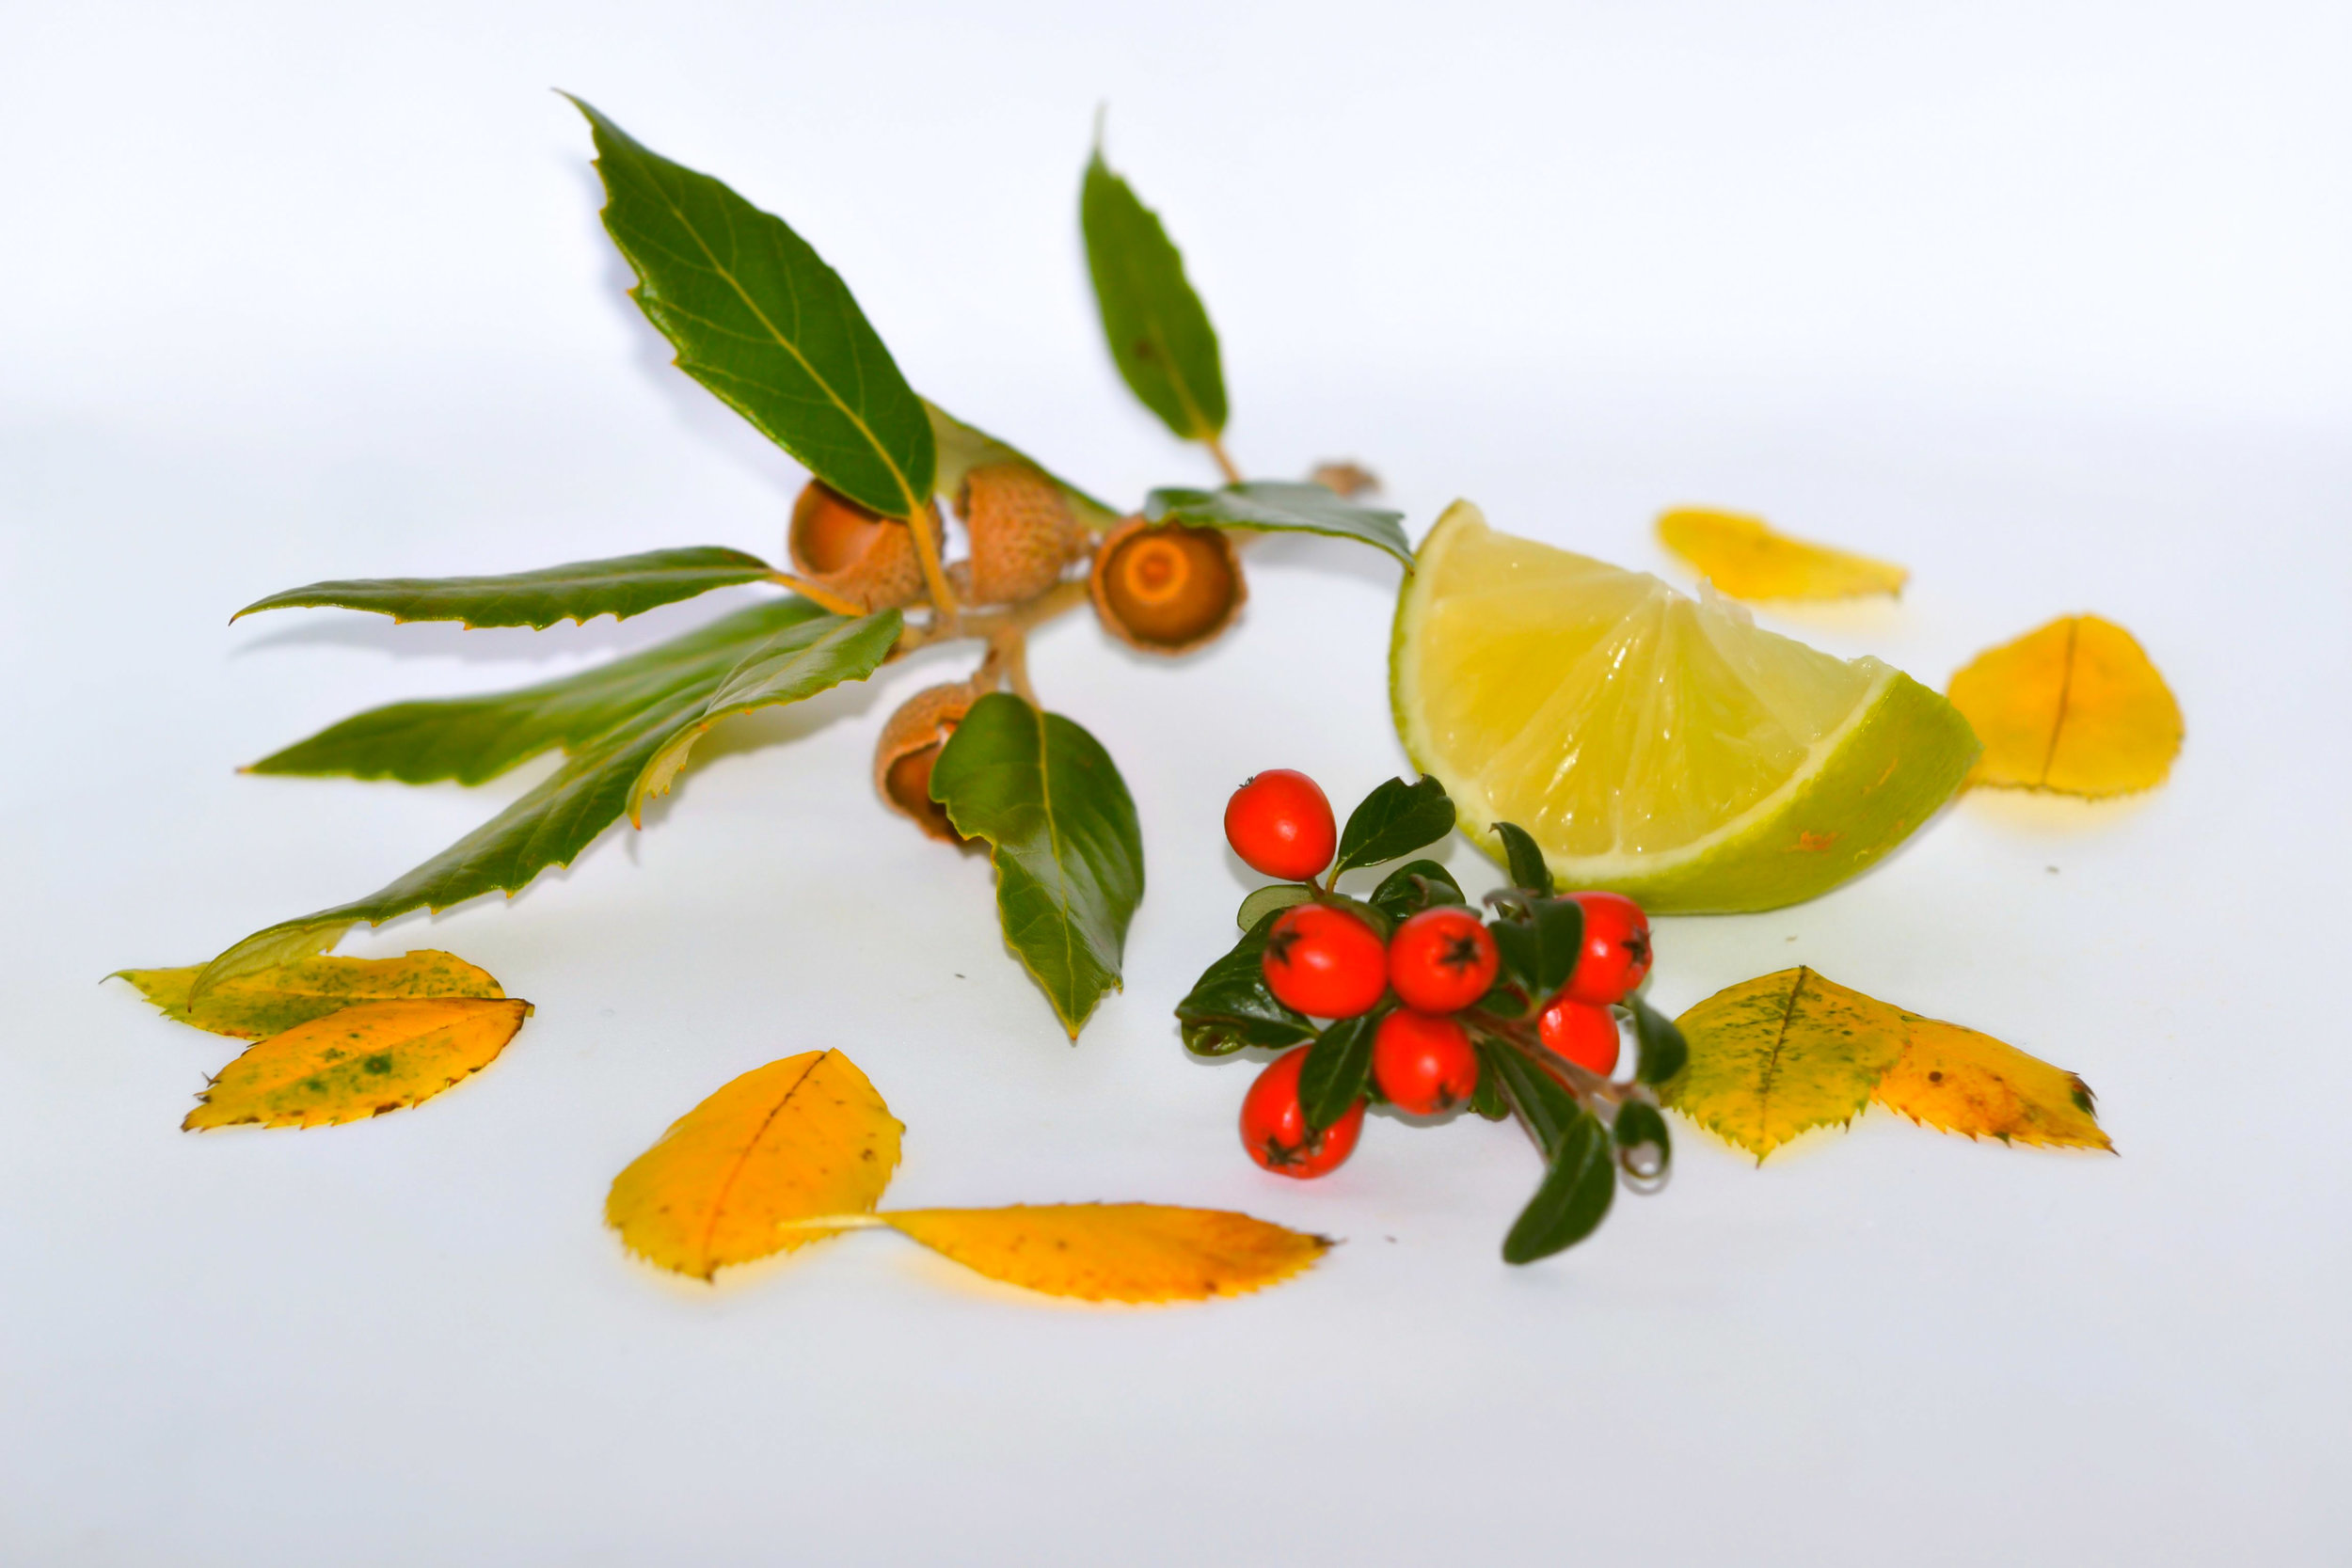 - Our focus will be mainly on the usage of essential oils in skincare, haircare and spa products as well as inhalers